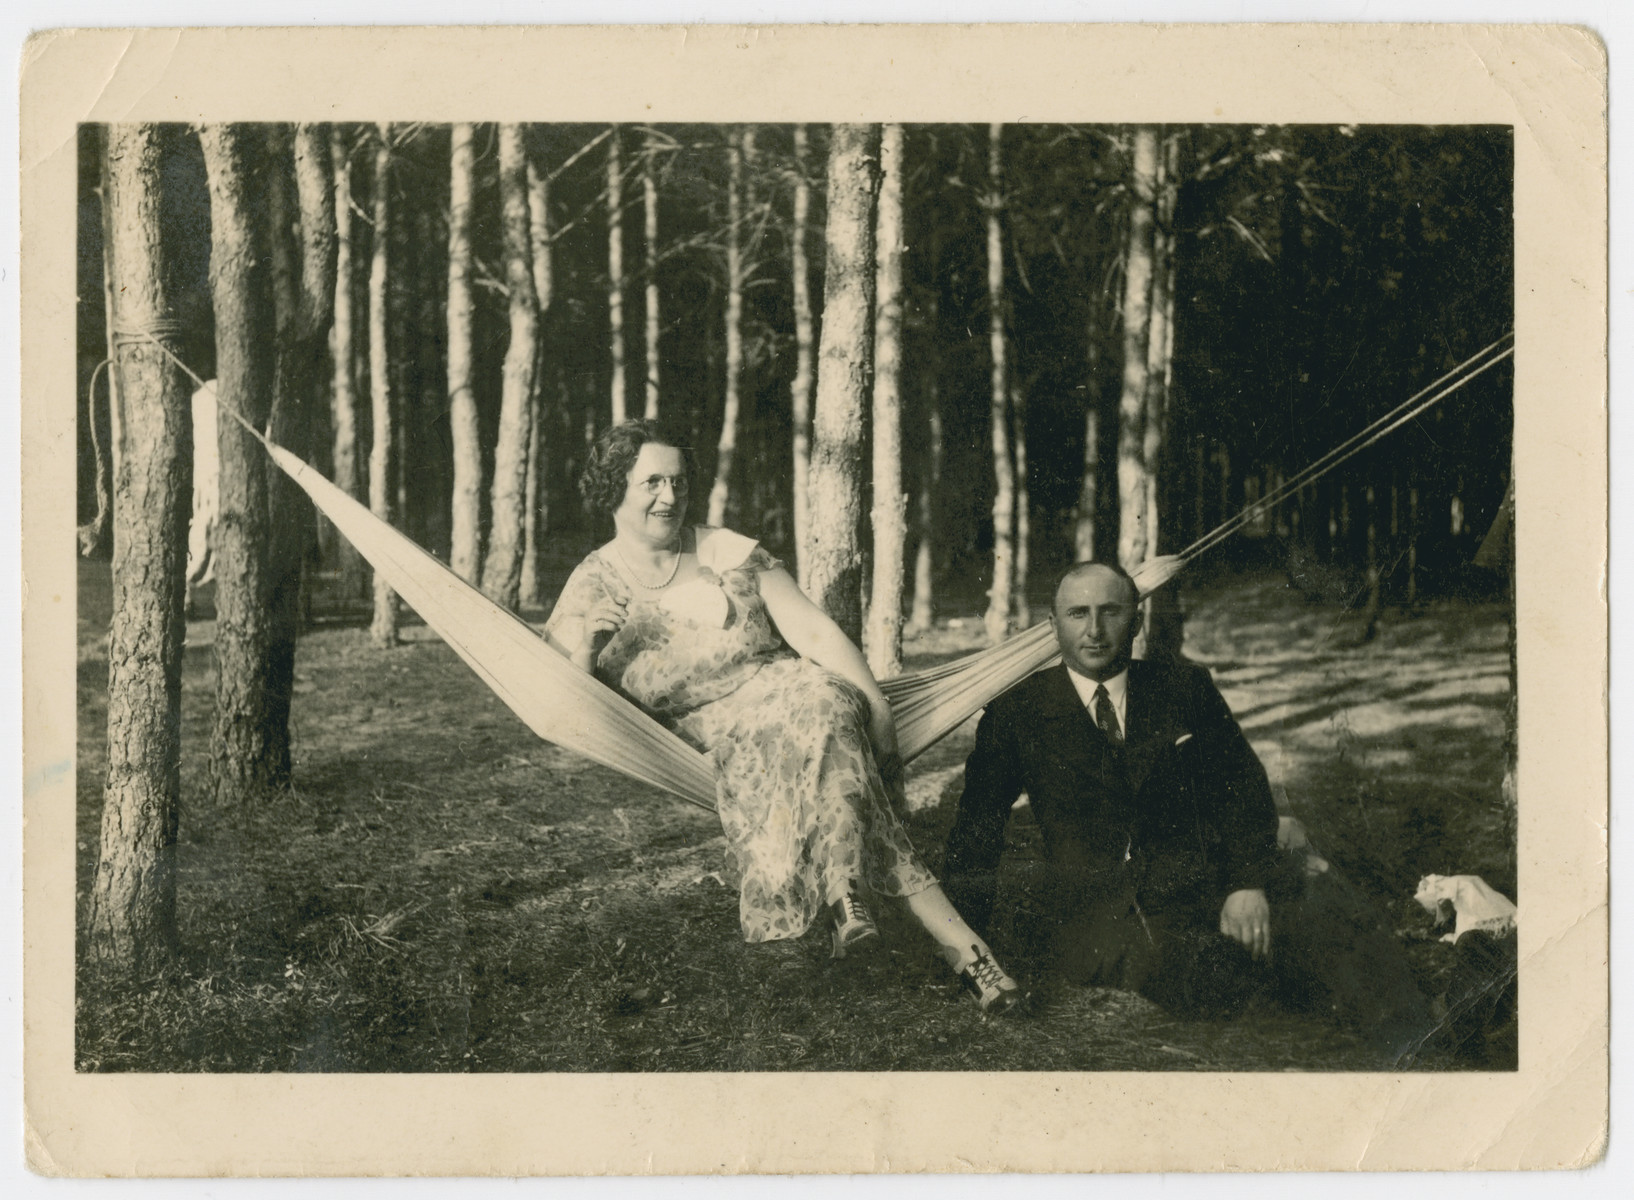 A couple rests on a hammock in prewar Butrimonys.  Part of a collection of photographs depicting Jews from Butrimonys where some 750 Jews were rounded up and murdered by the Einsatzgruppen and Lithuanian collaborators after the invasion of the USSR.